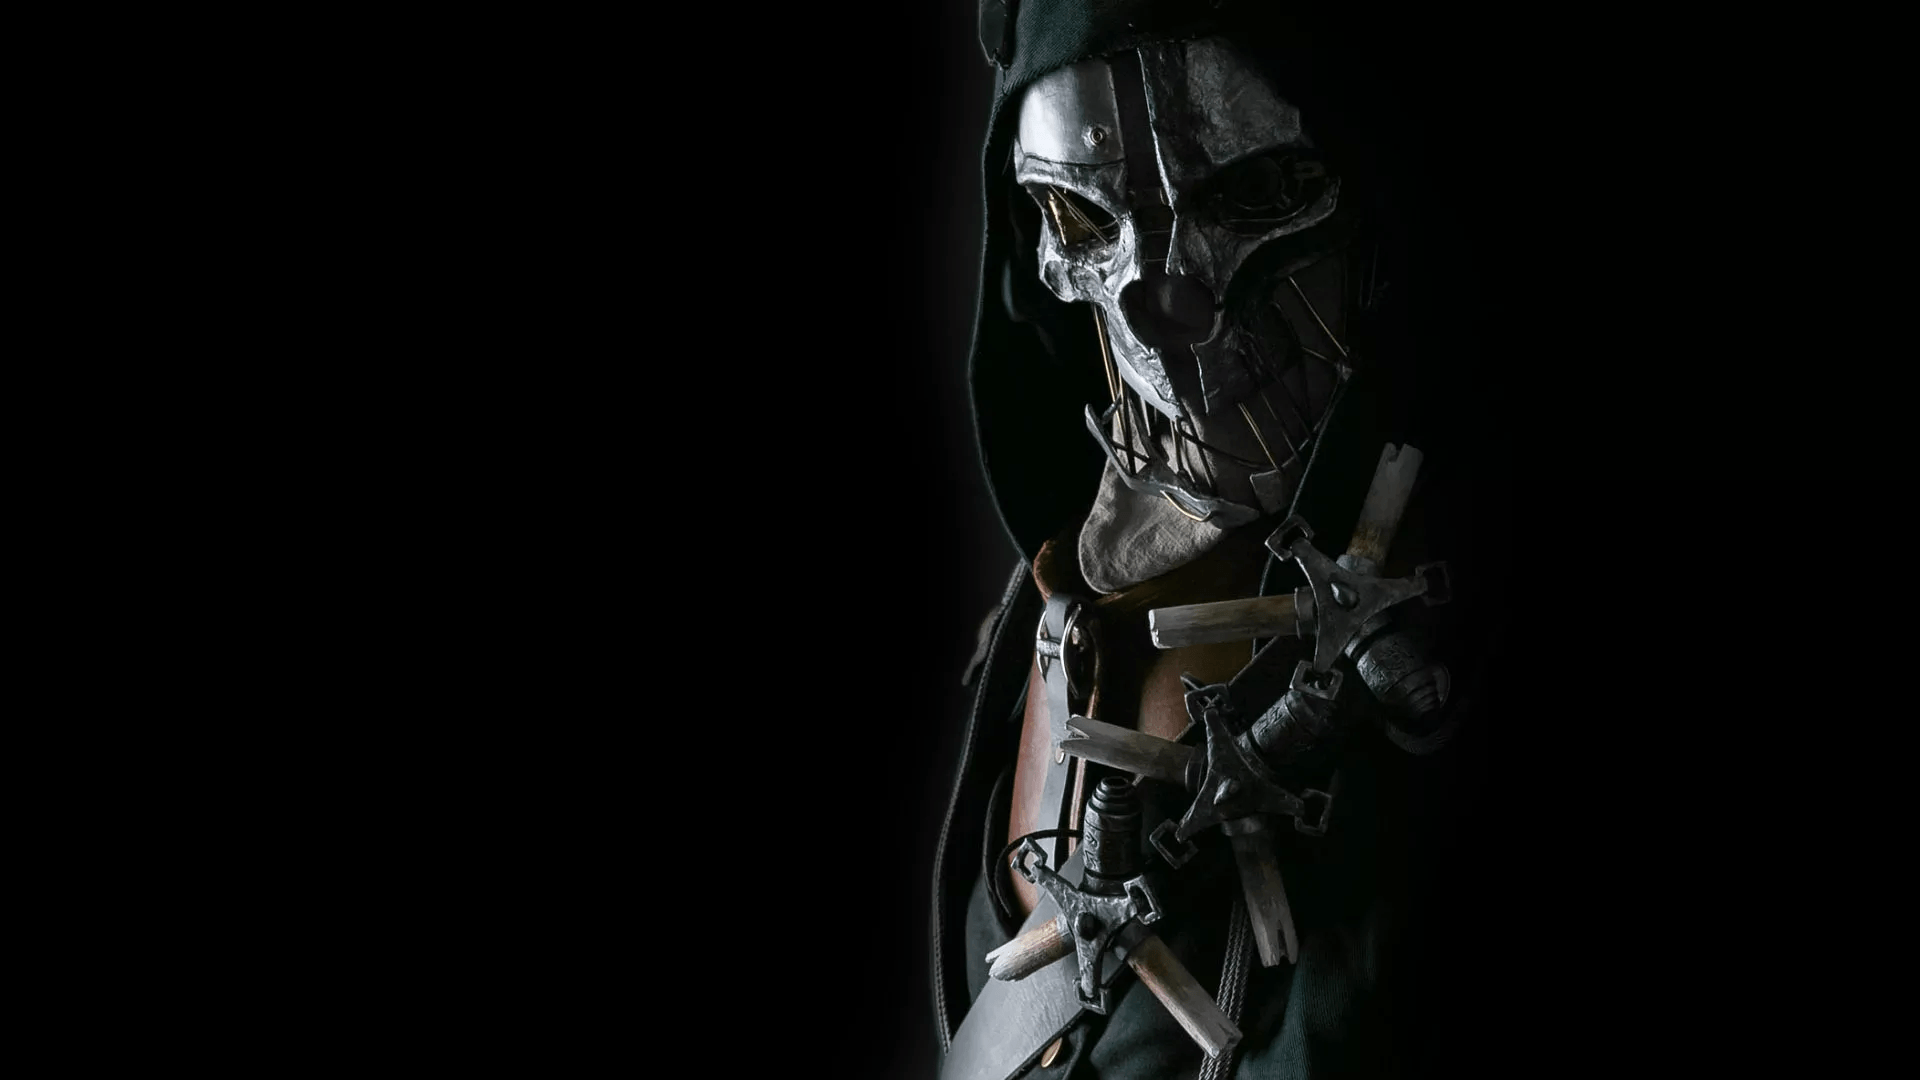 Dishonored 2 Wallpapers Wallpaper Cave